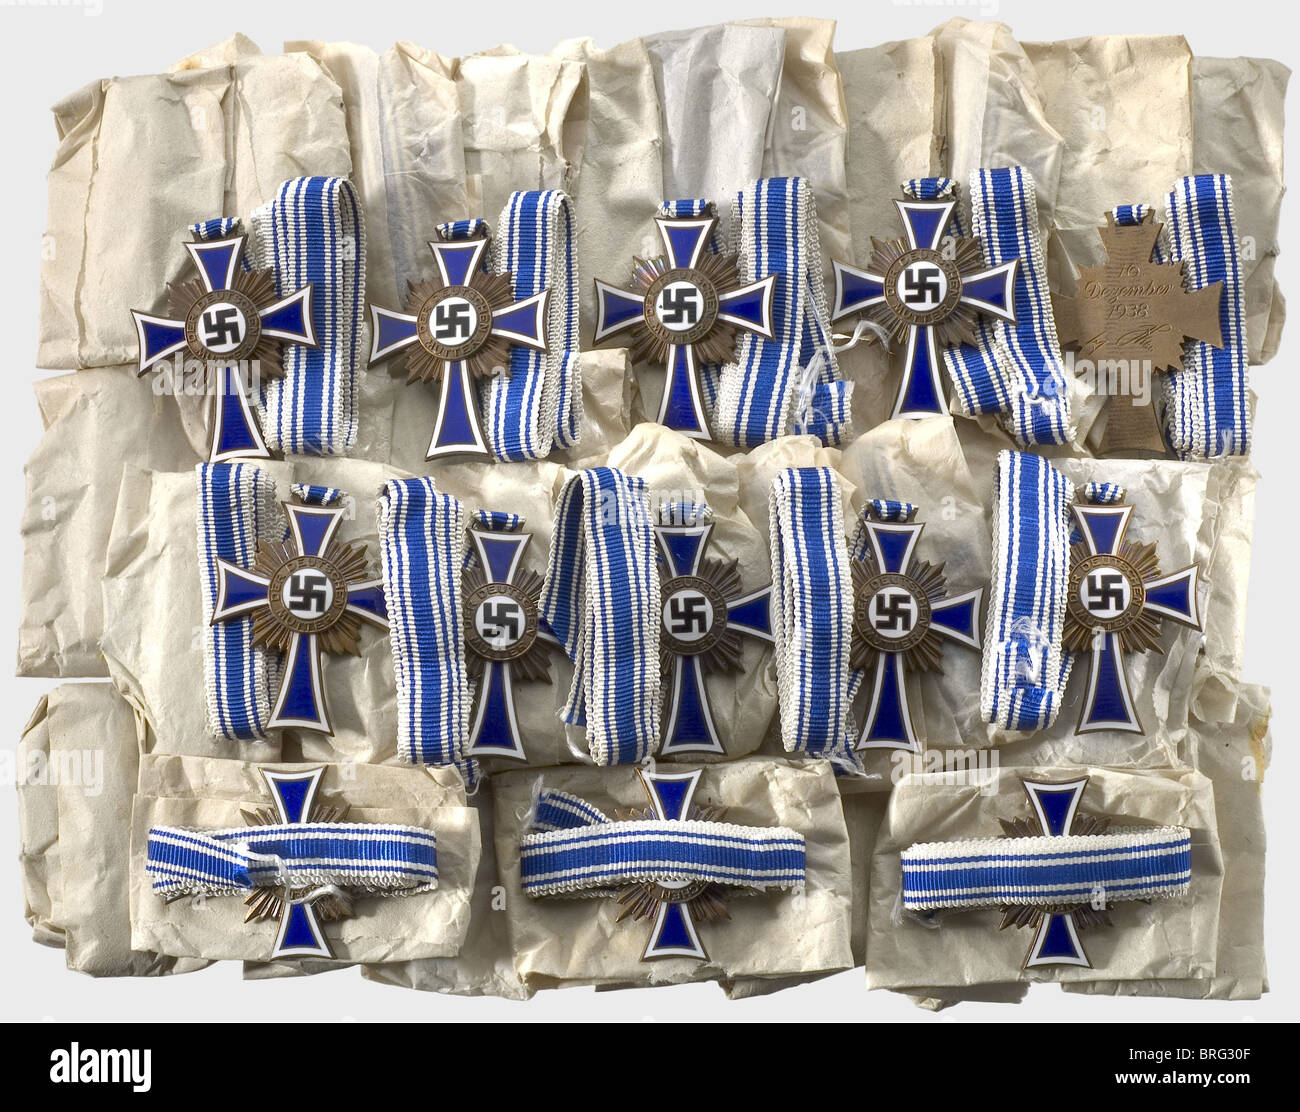 50 Mother's Crosses in Bronze, of the firm Deschler & Son. All are with ribbons, in original tissue papers, - Stock Image